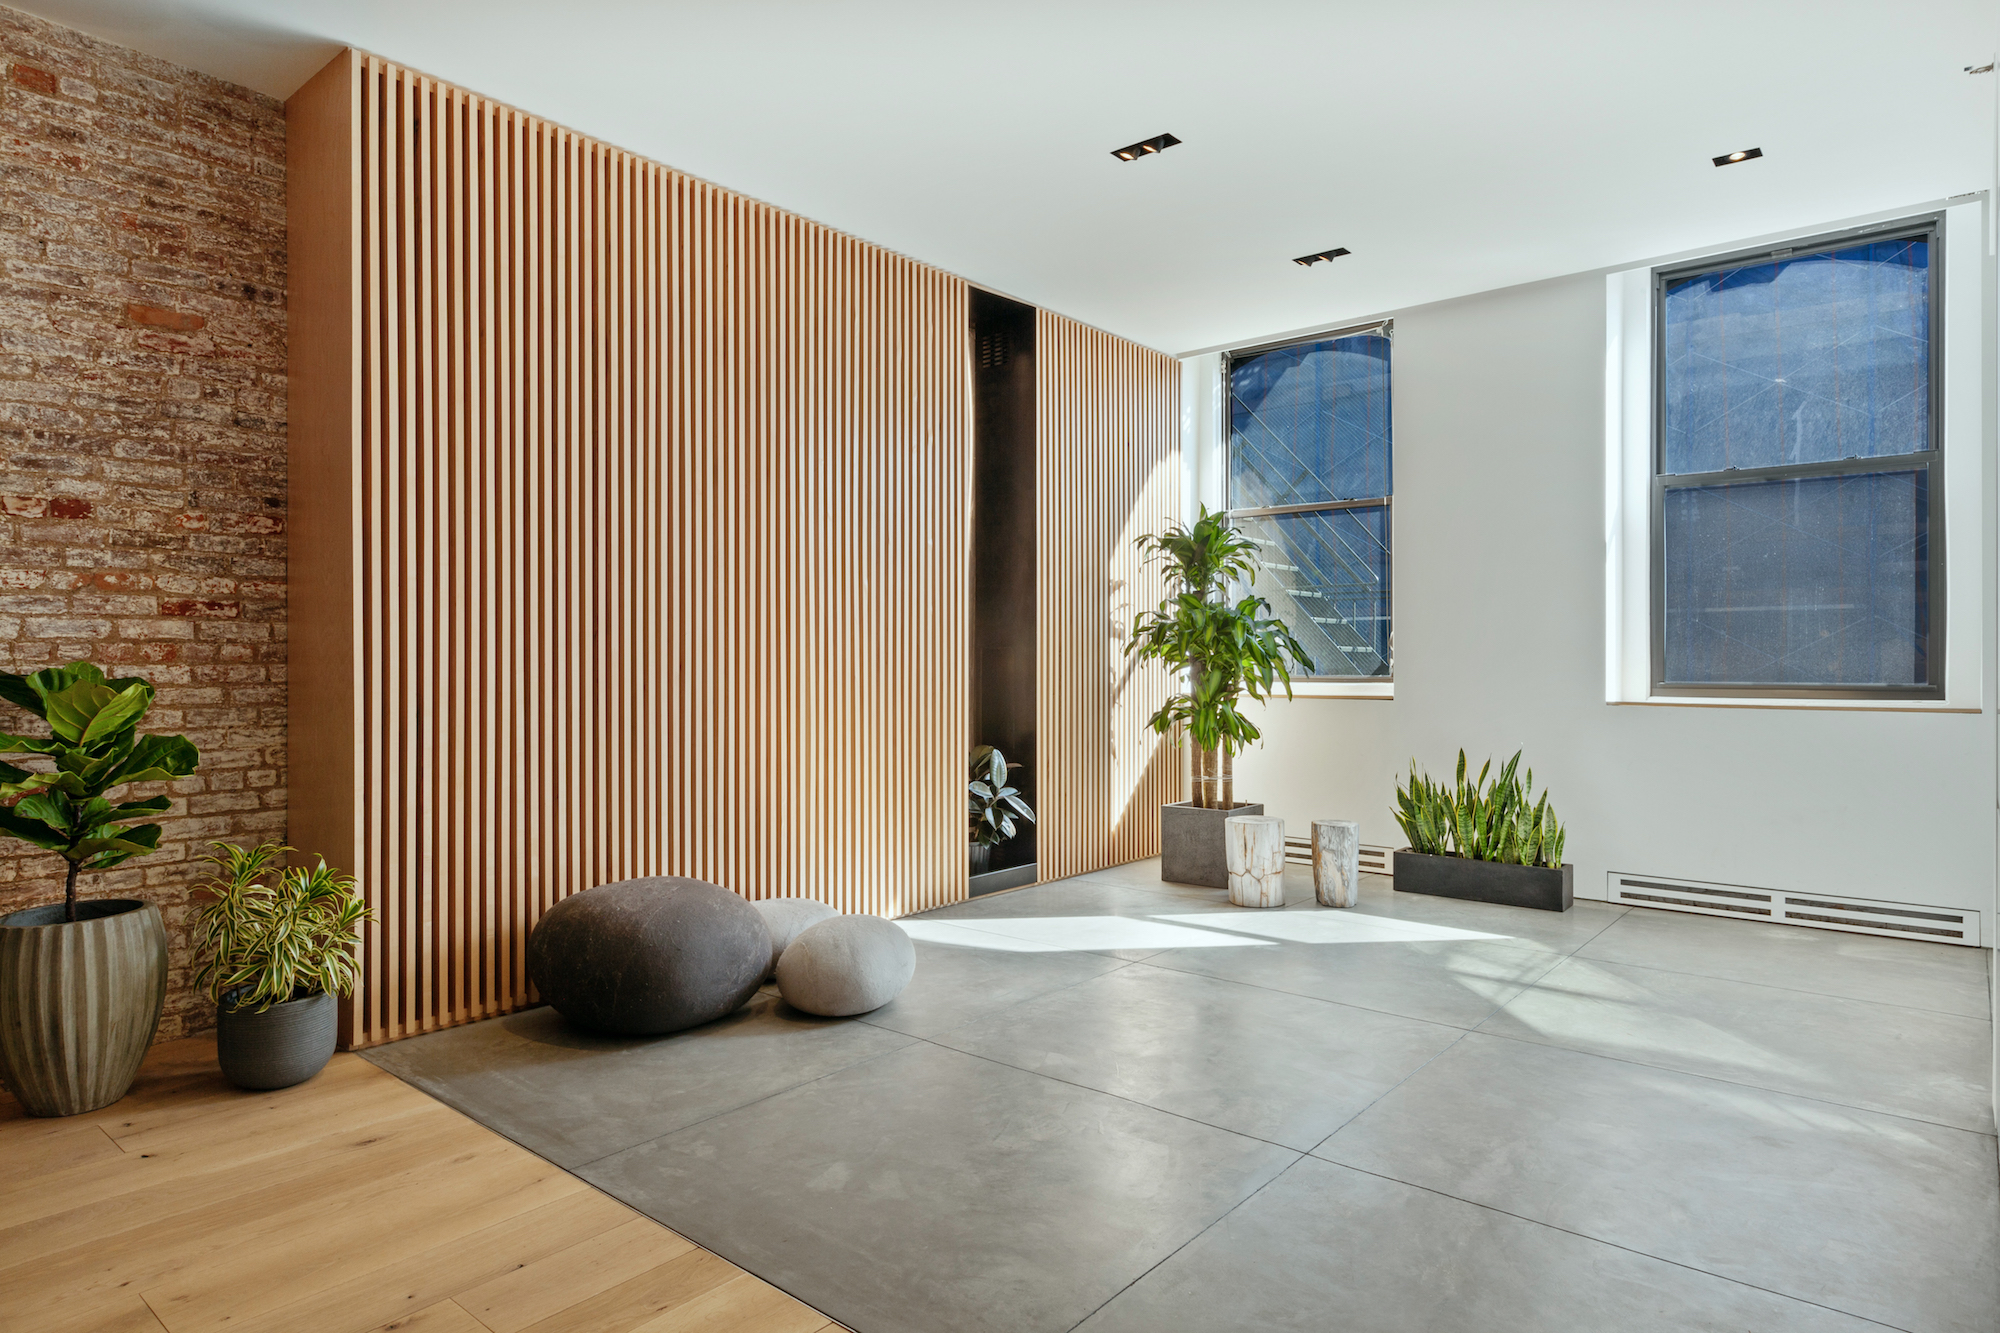 The Unit Has A Concrete Floored Foyer That Flows Into